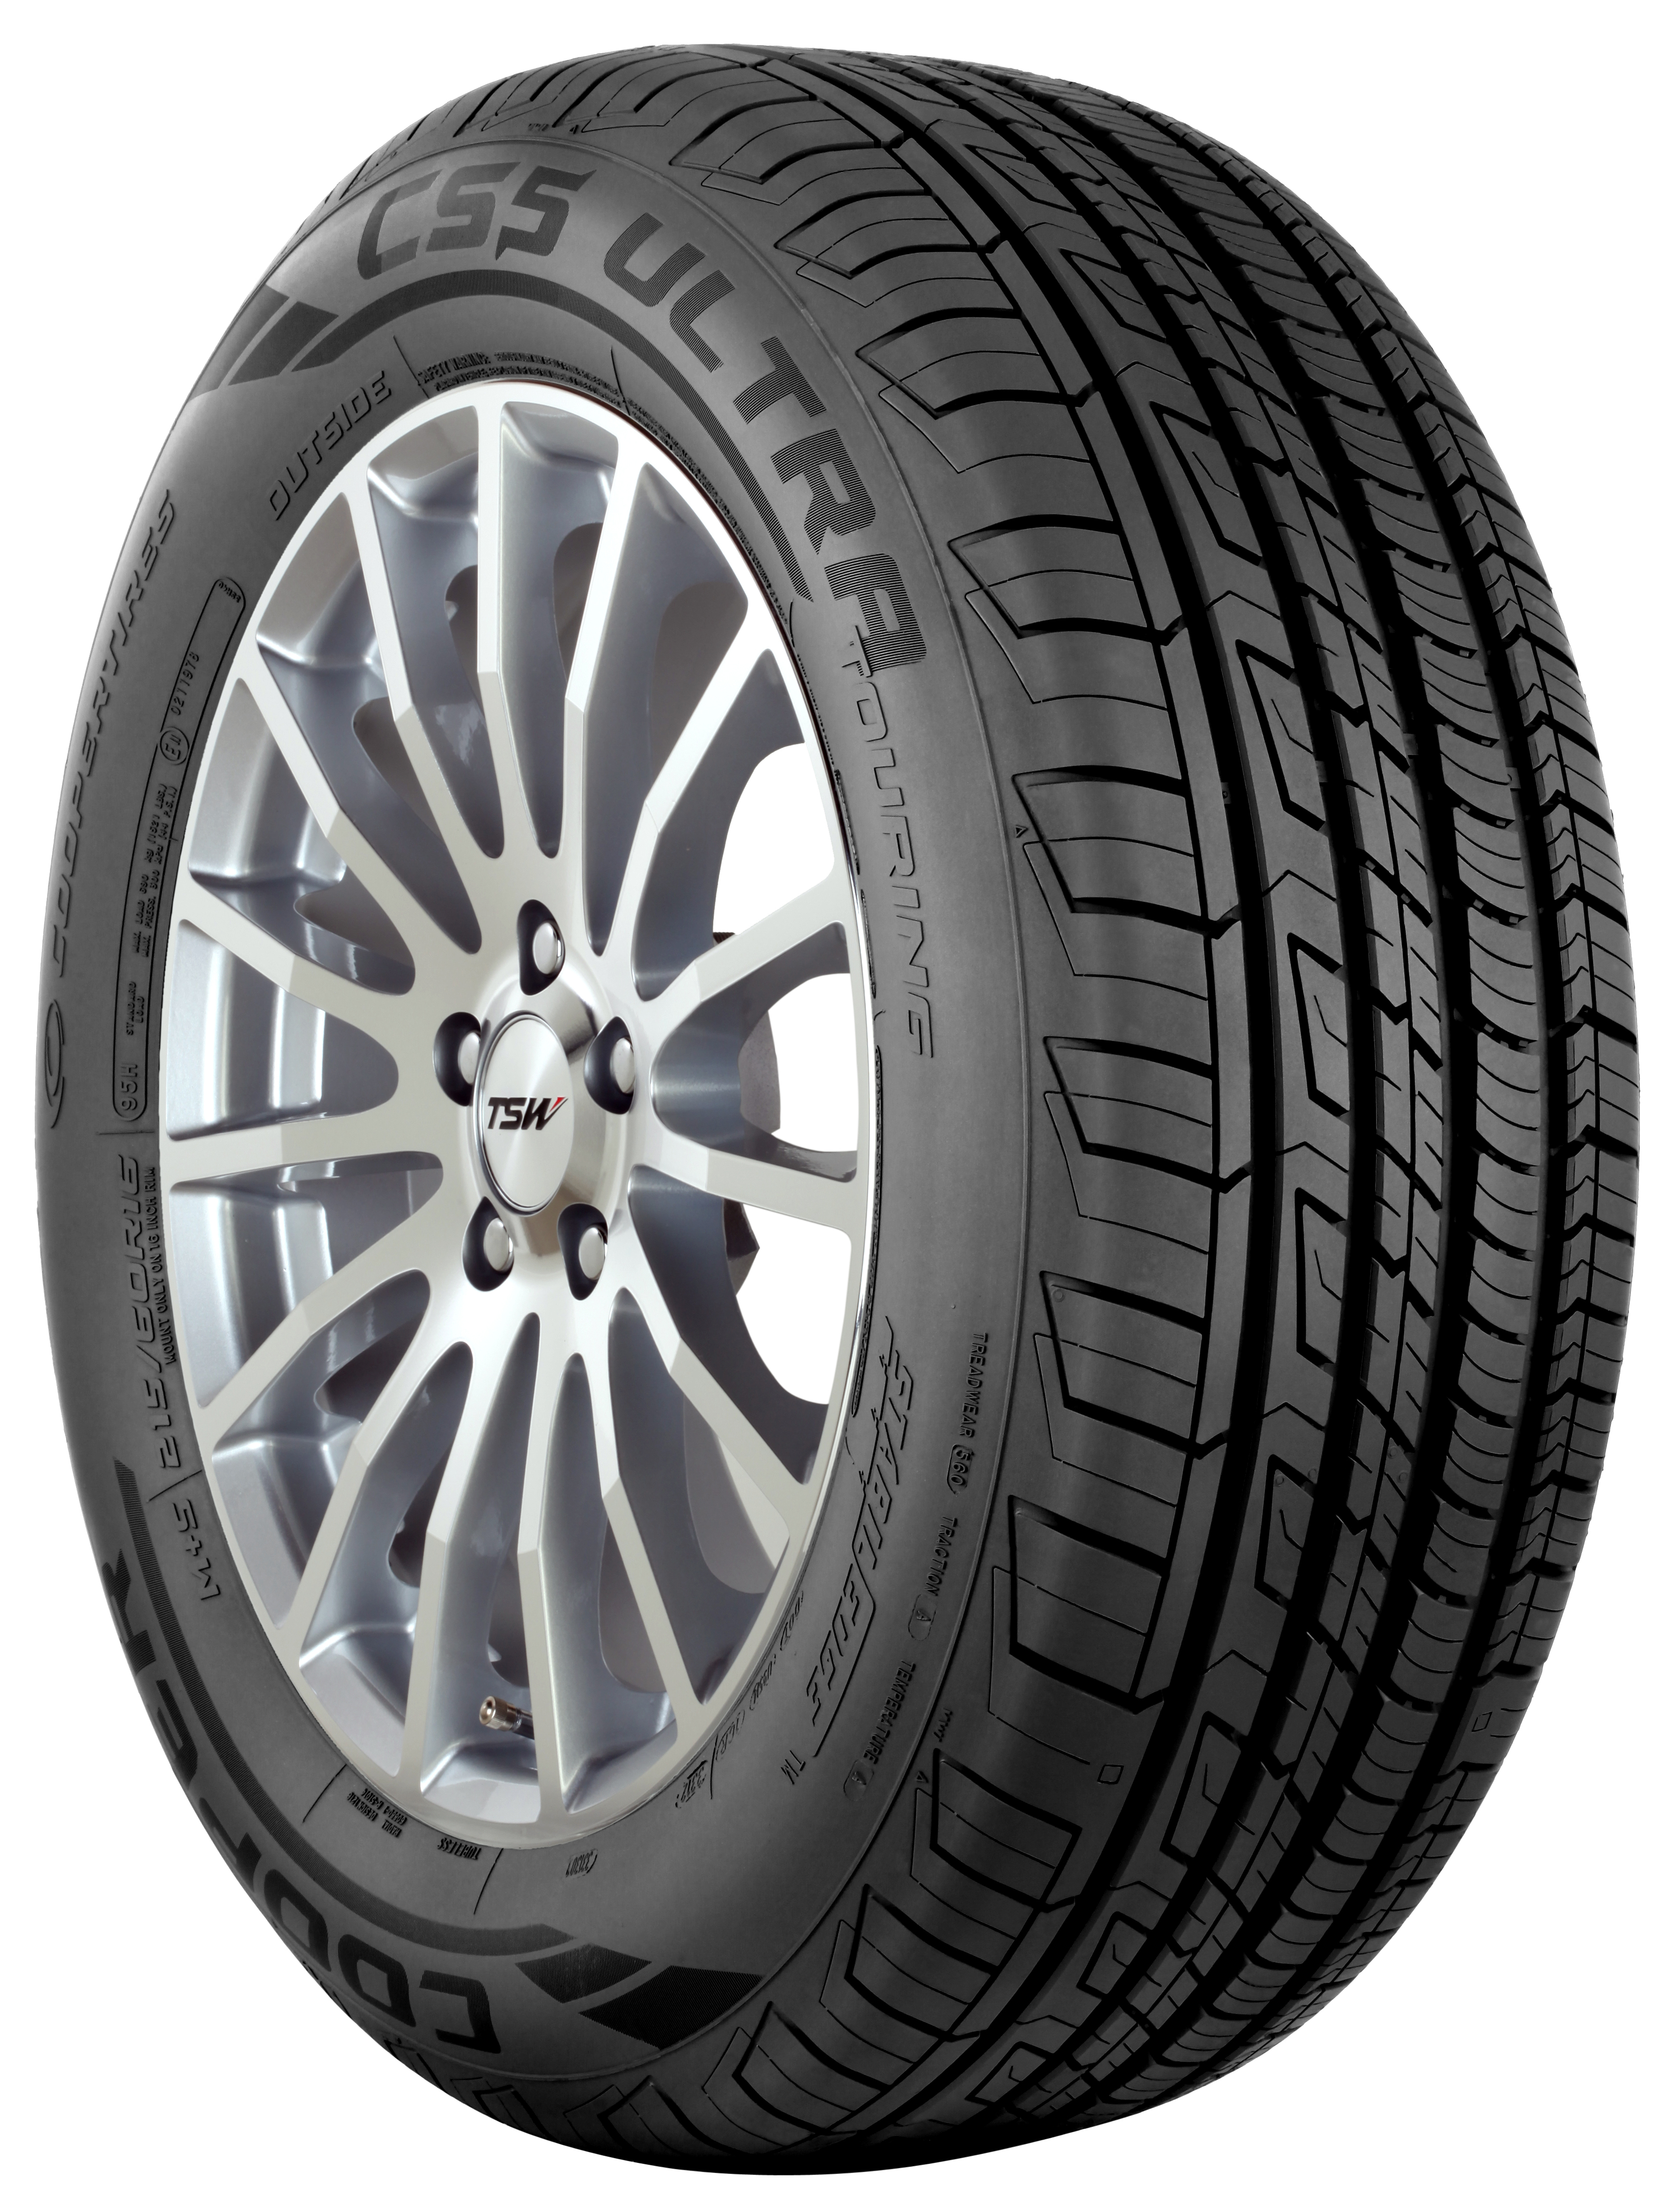 Cooper's new CS5 luxury touring tire with an innovative Wear Square™ visual tread wear indicator. (Photo: Business Wire)